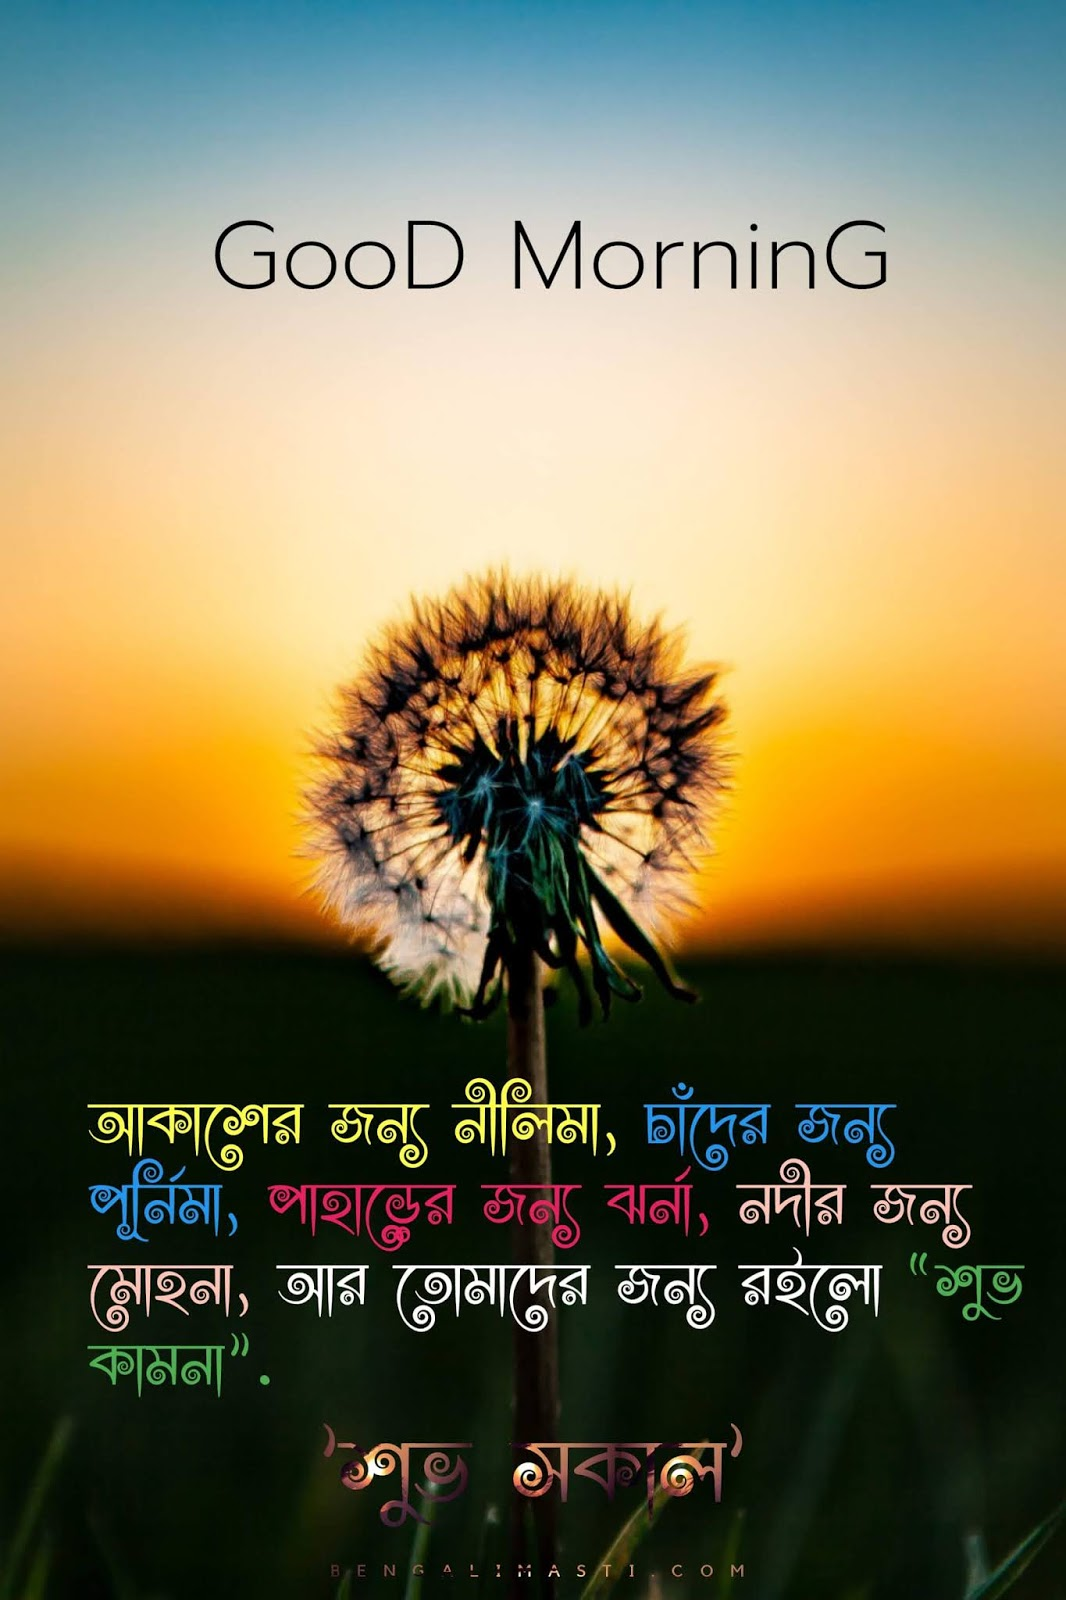 Good Morning image in bengali